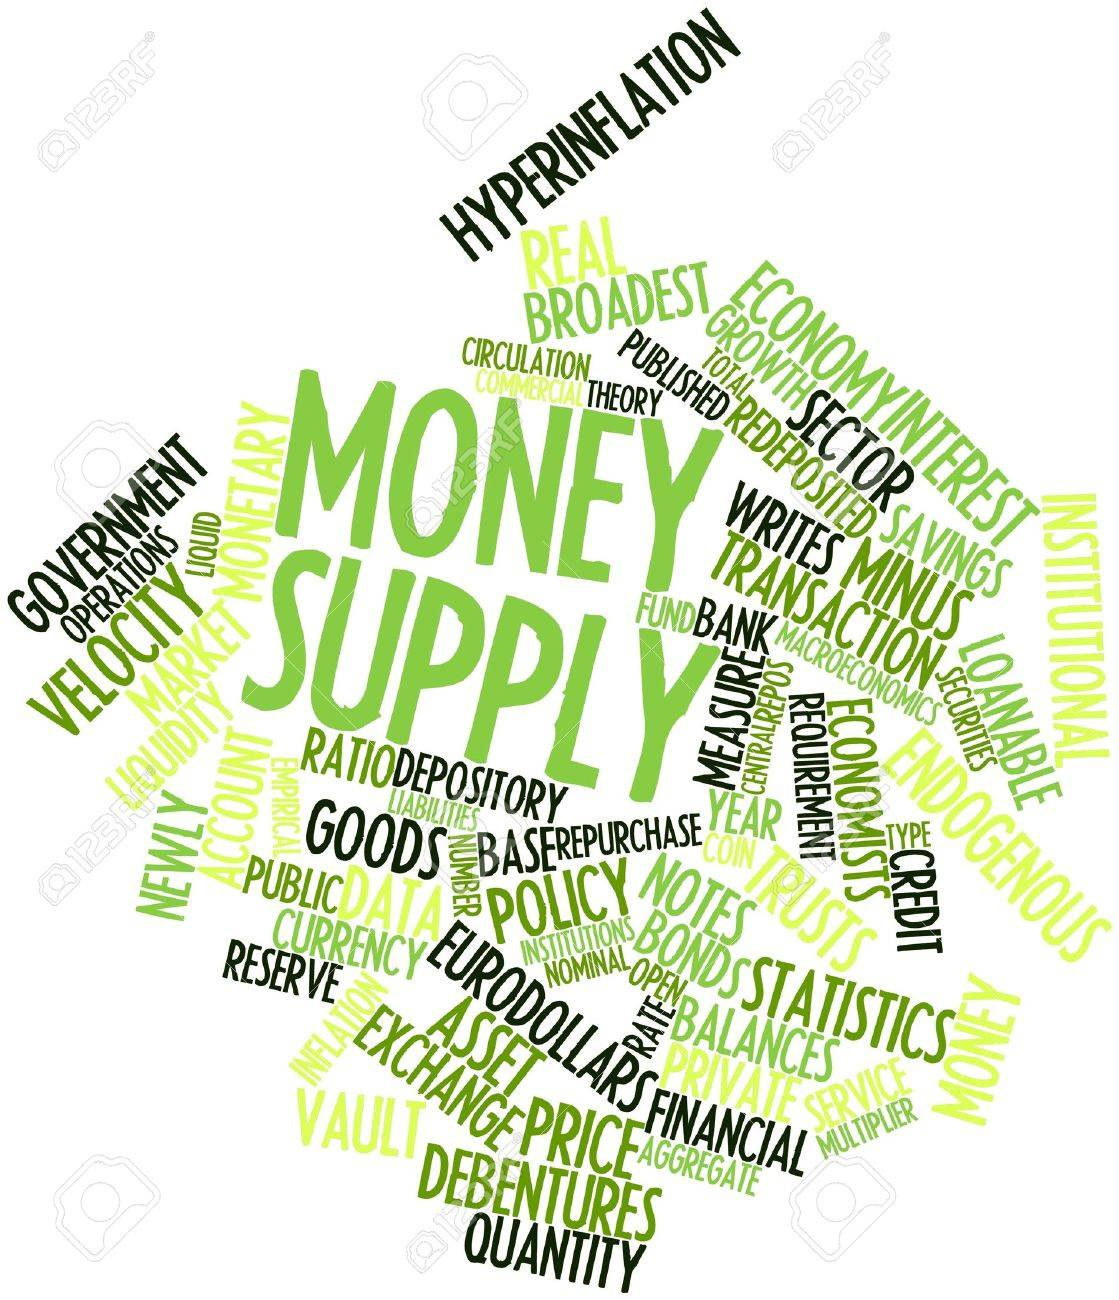 Image result for money supply